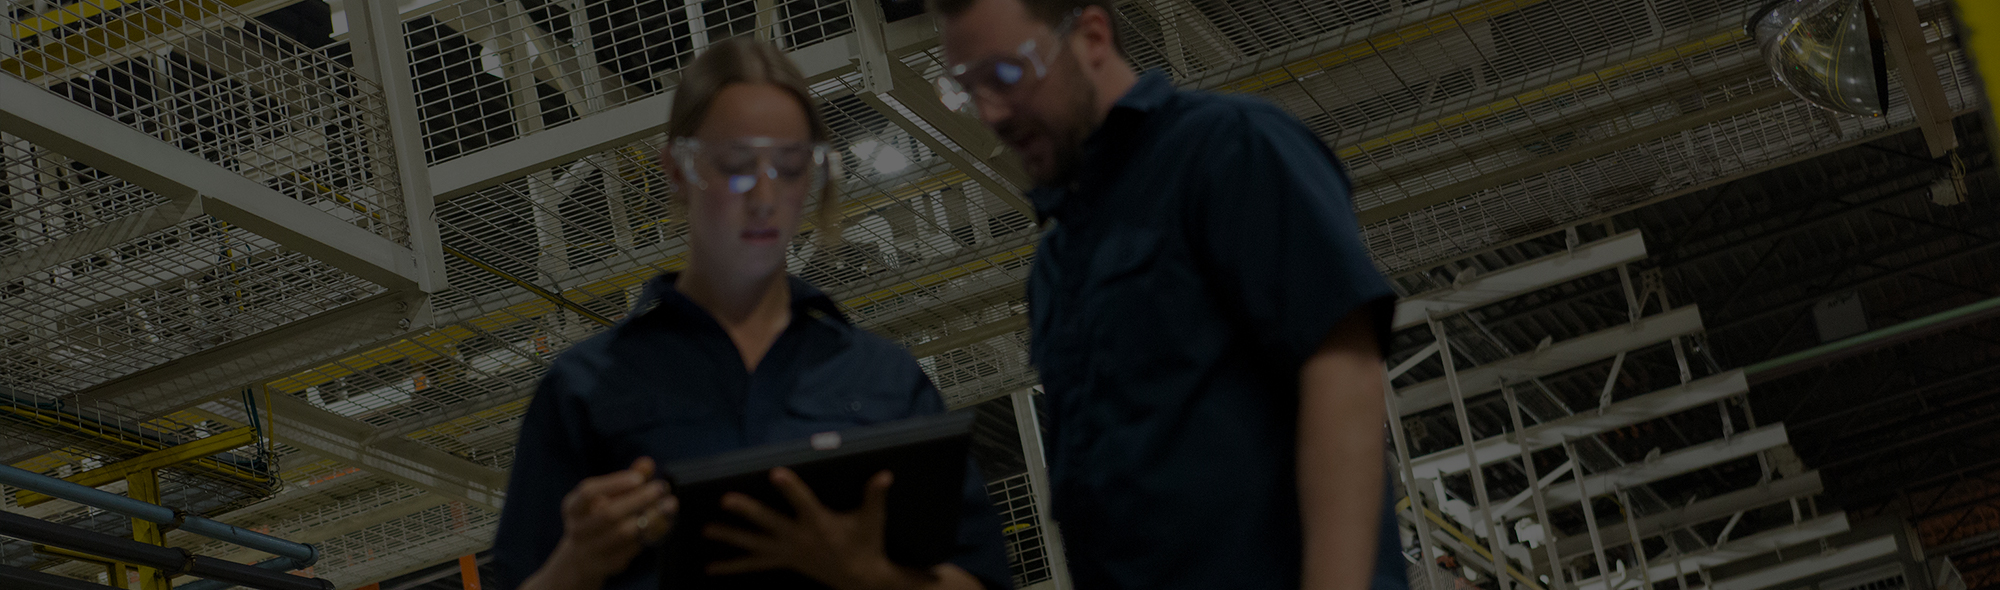 Factory workers looking at tablet device.